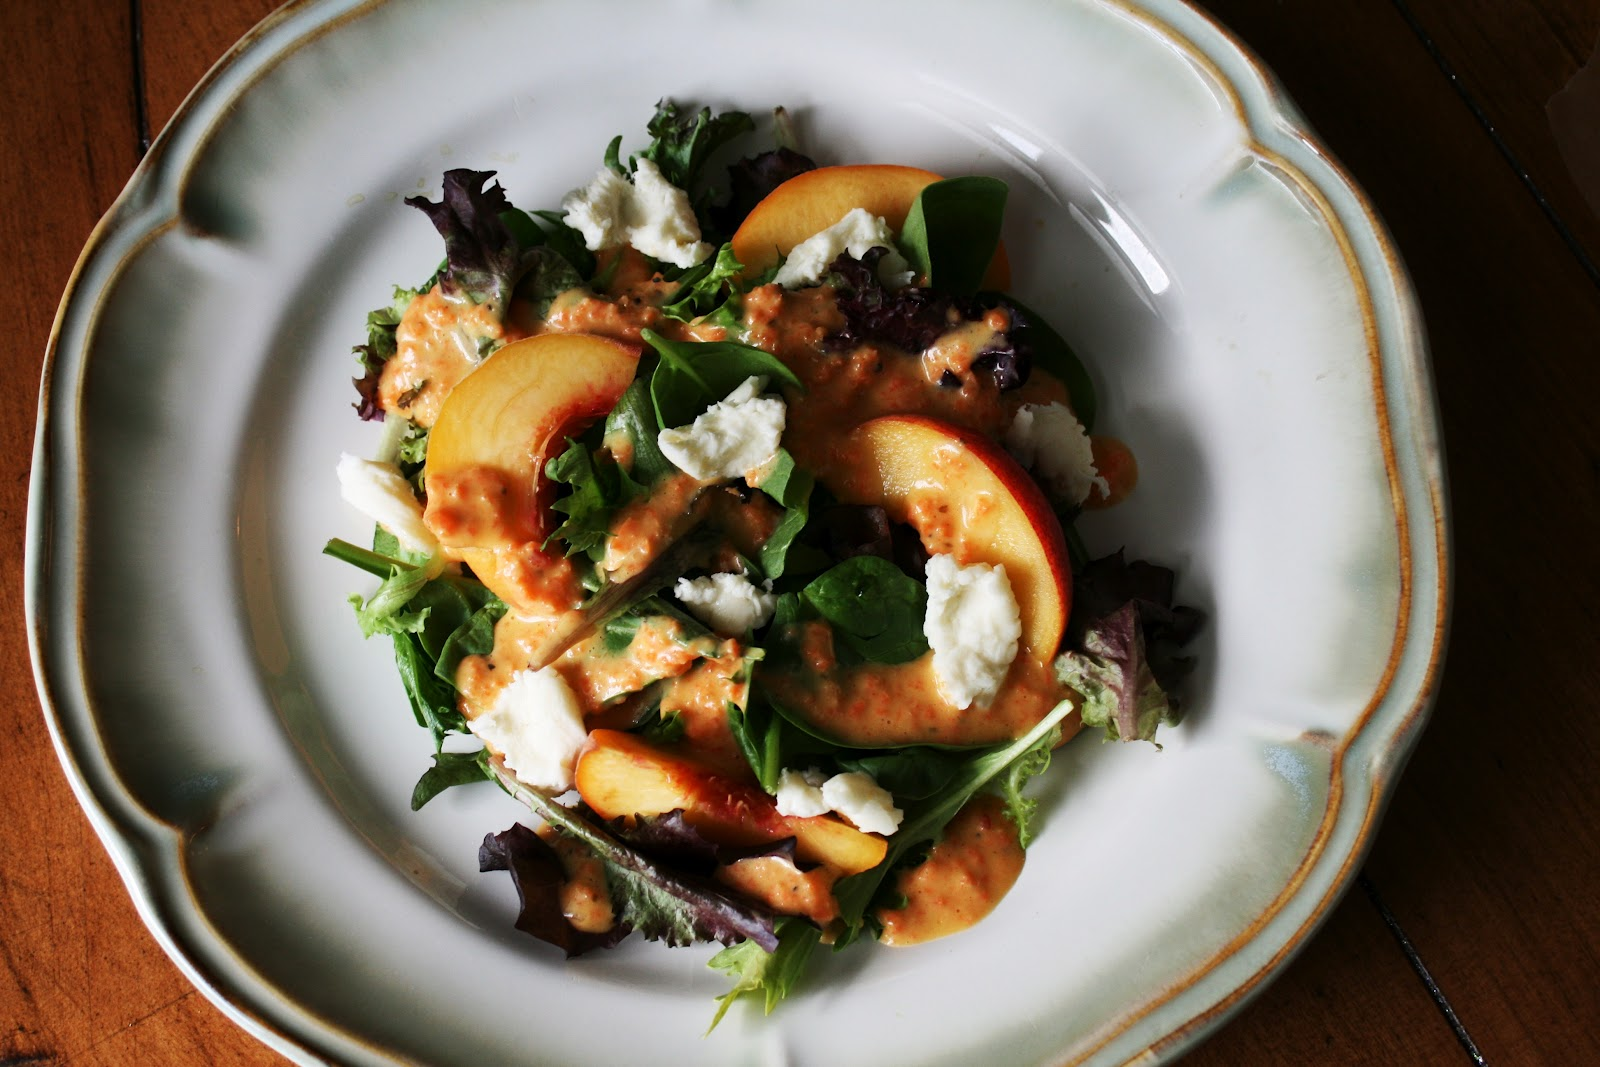 Peach Salad with Ginger Dressing